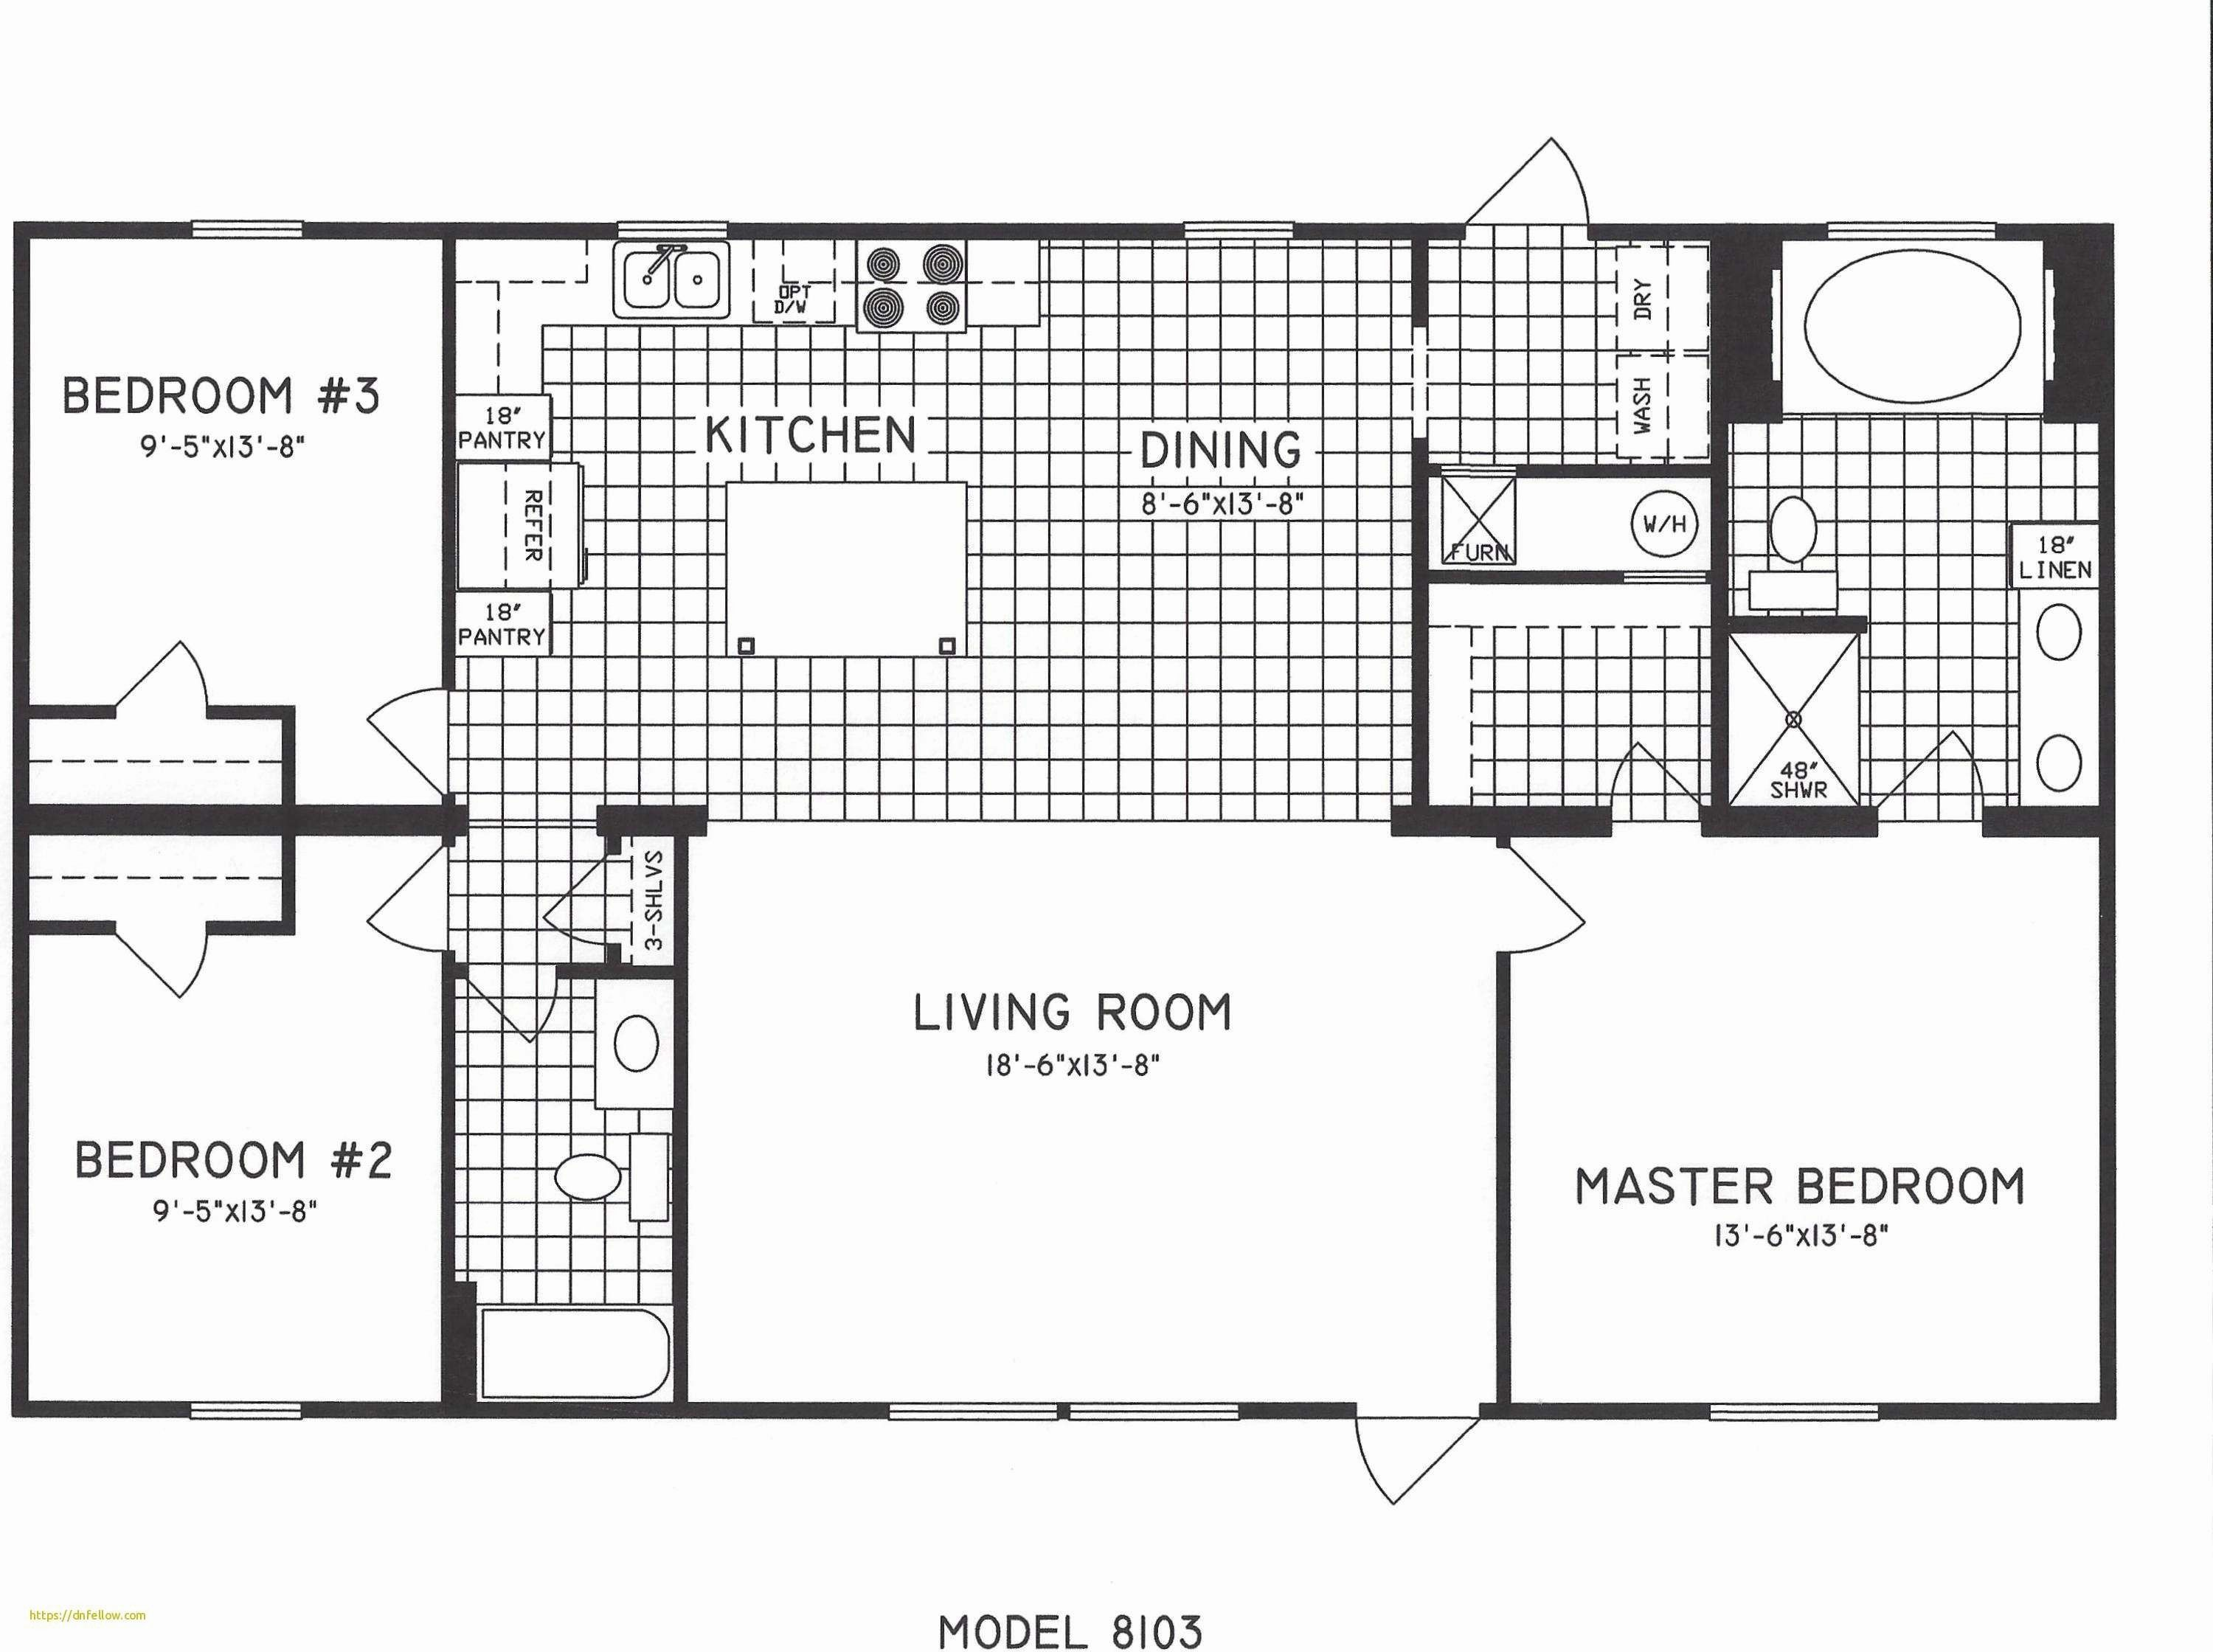 Bedroom Floor Plan Generator Check more at http://www.arch5.club